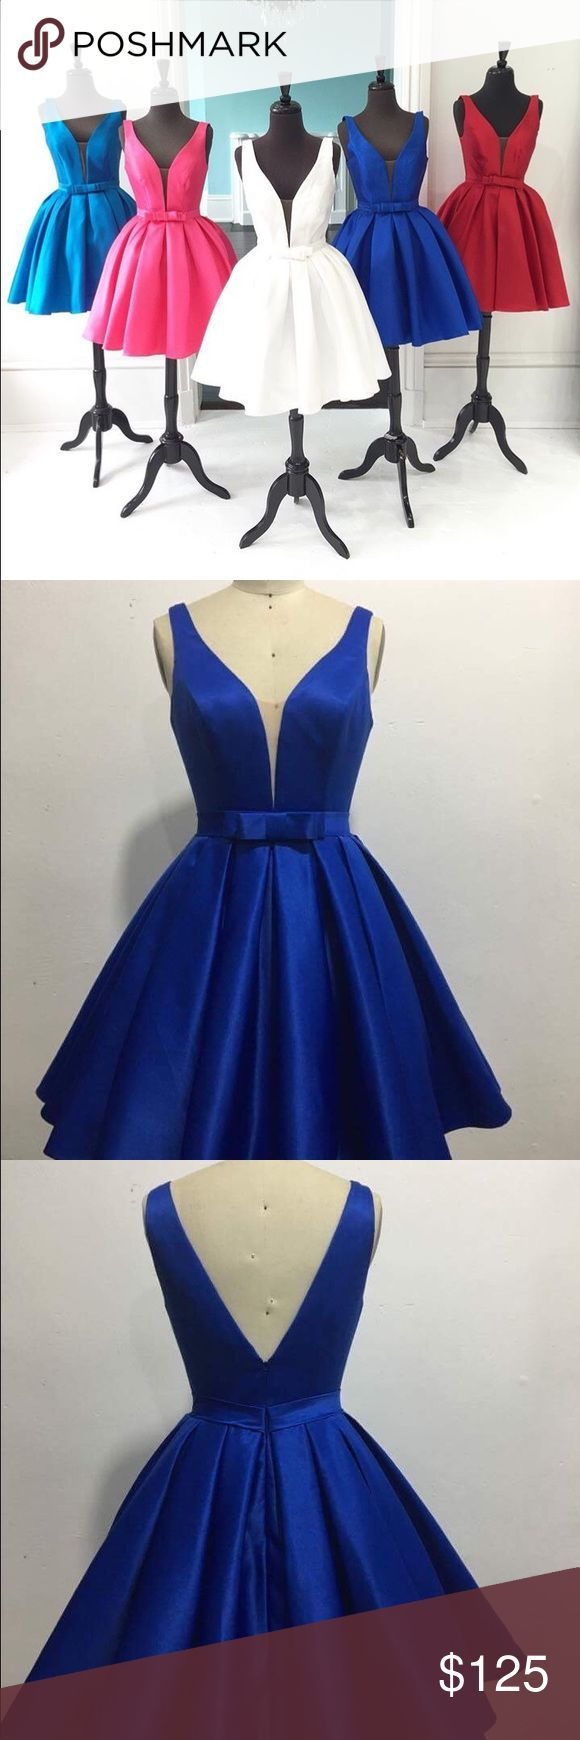 Hr royal blue cocktail dress short prom nwt limited sizes